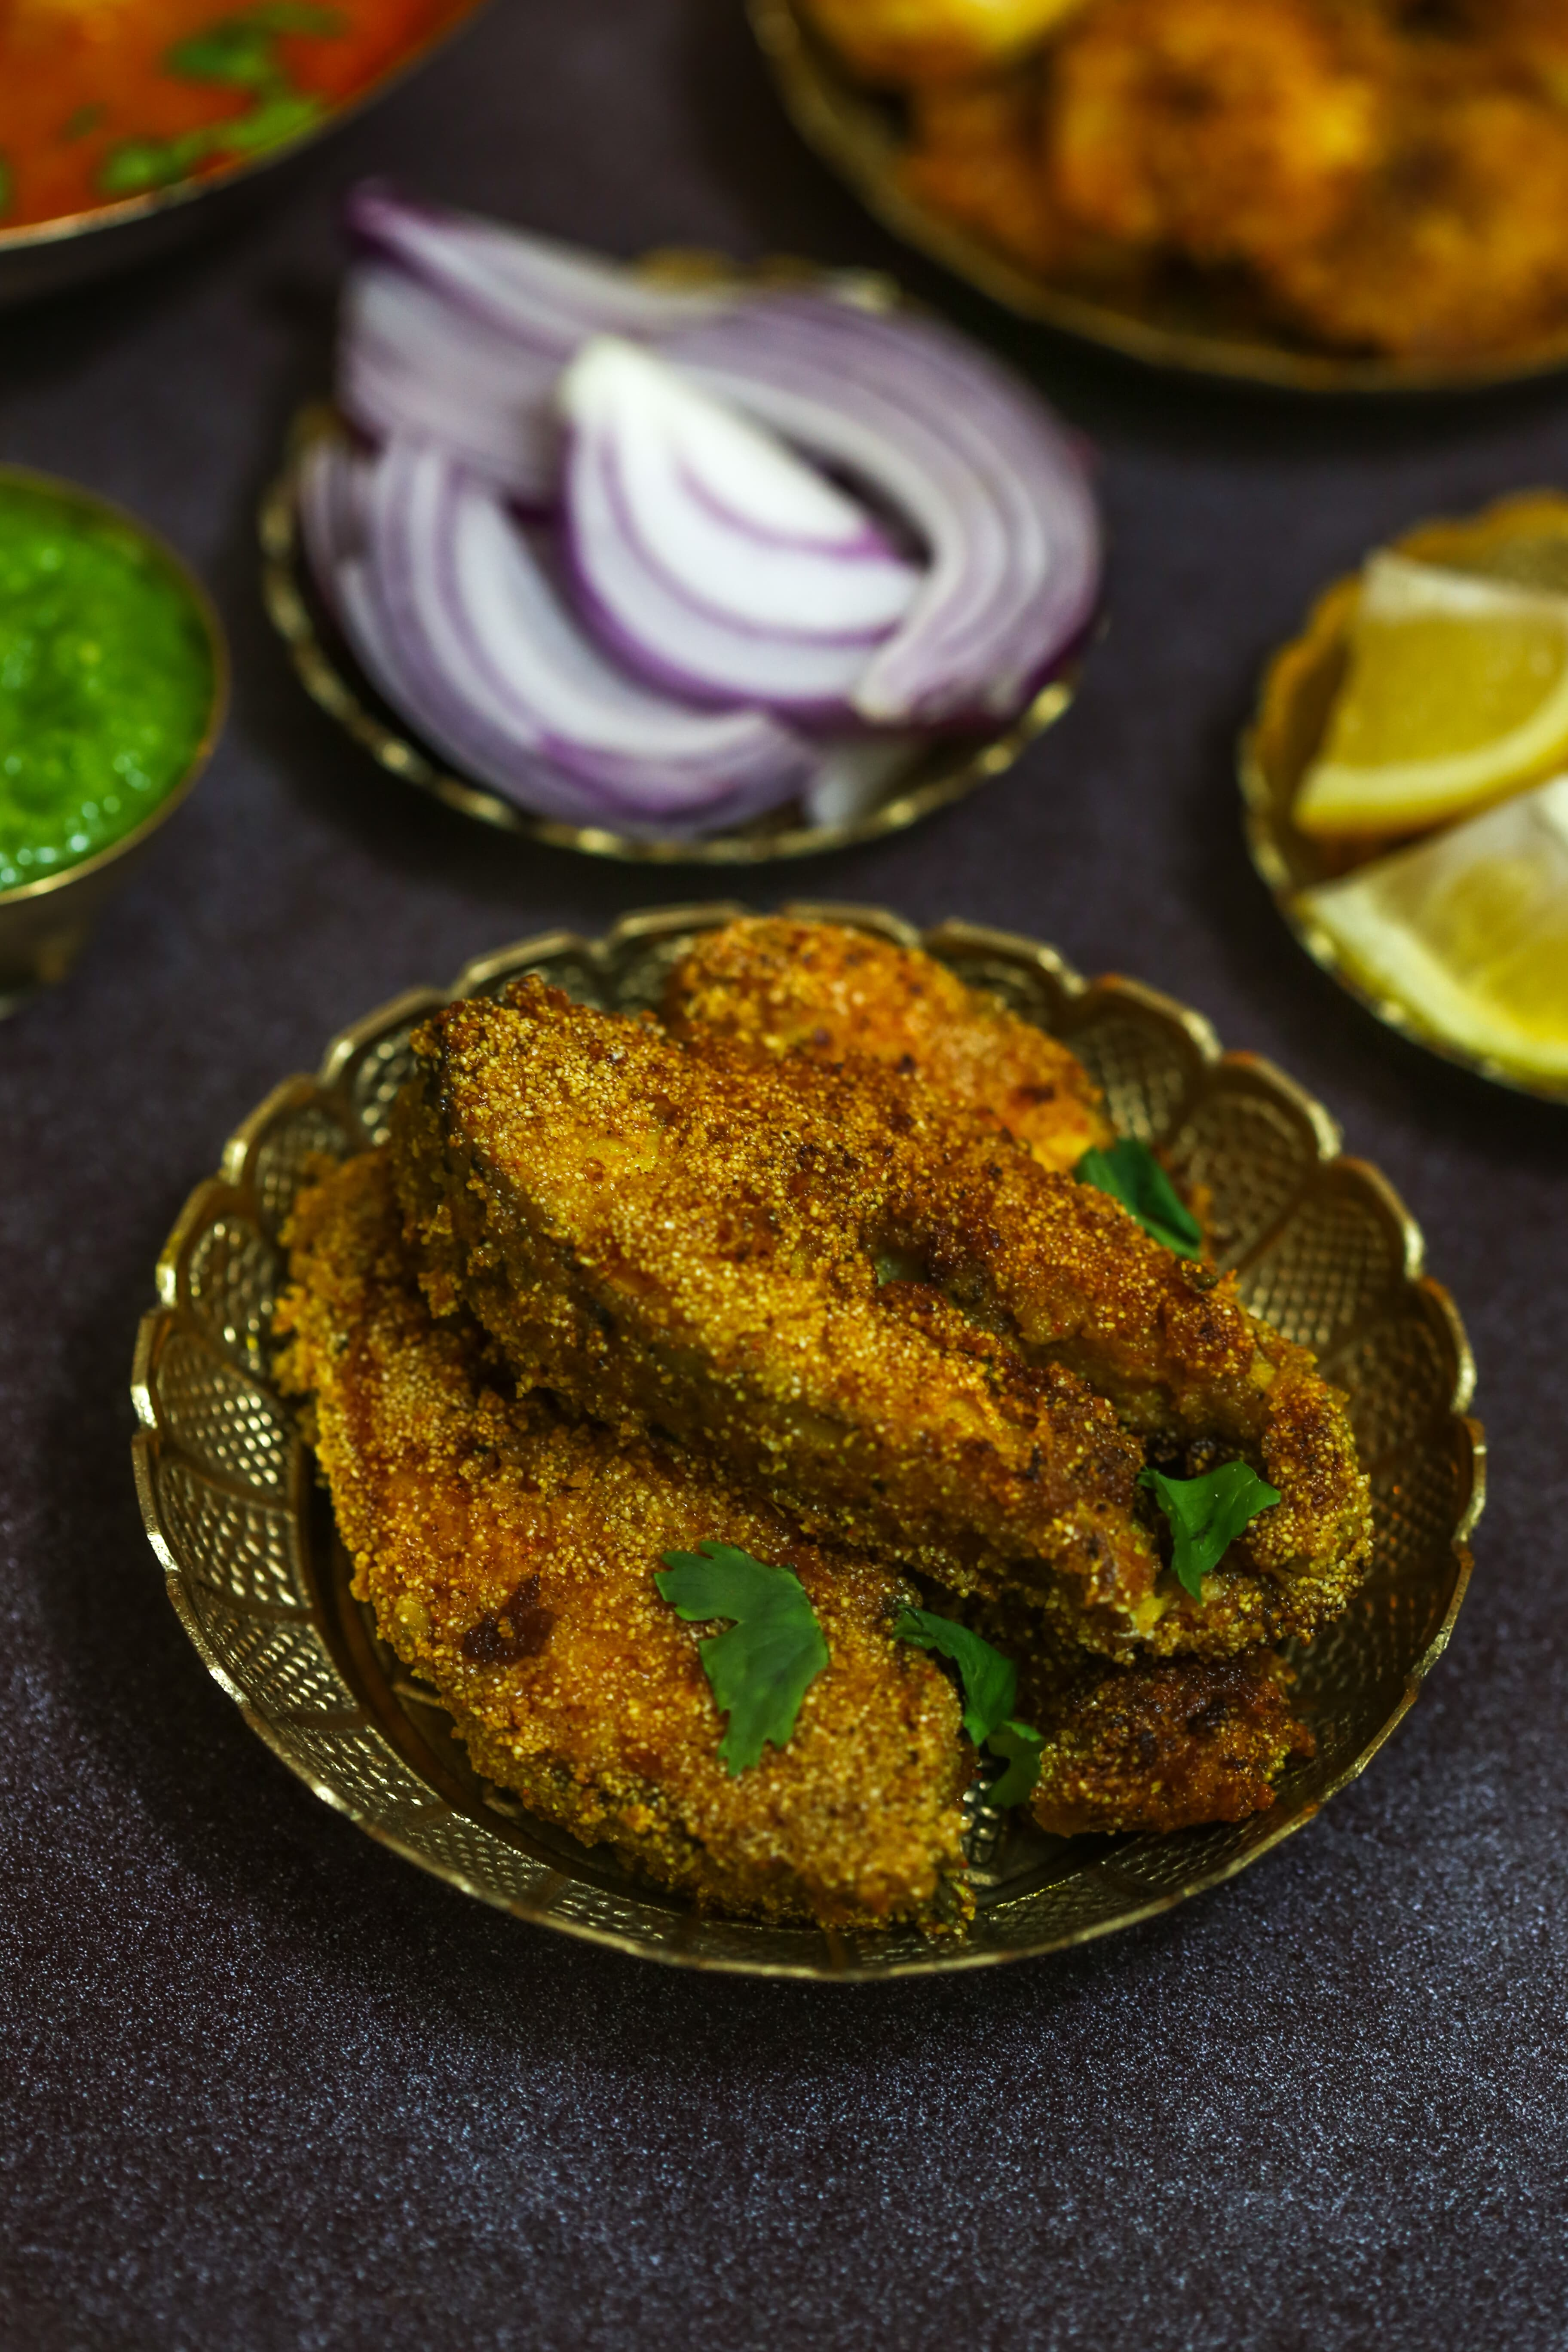 Goan prawns recipe, how to make prawns curry, tilapia fry recipe, prawns fry recipe, best food blog, food photography tips, top ten food blogs, indian recipes food blog, prawns fry kerala, goan shrimp curry, goan recipes, fish fry recipe